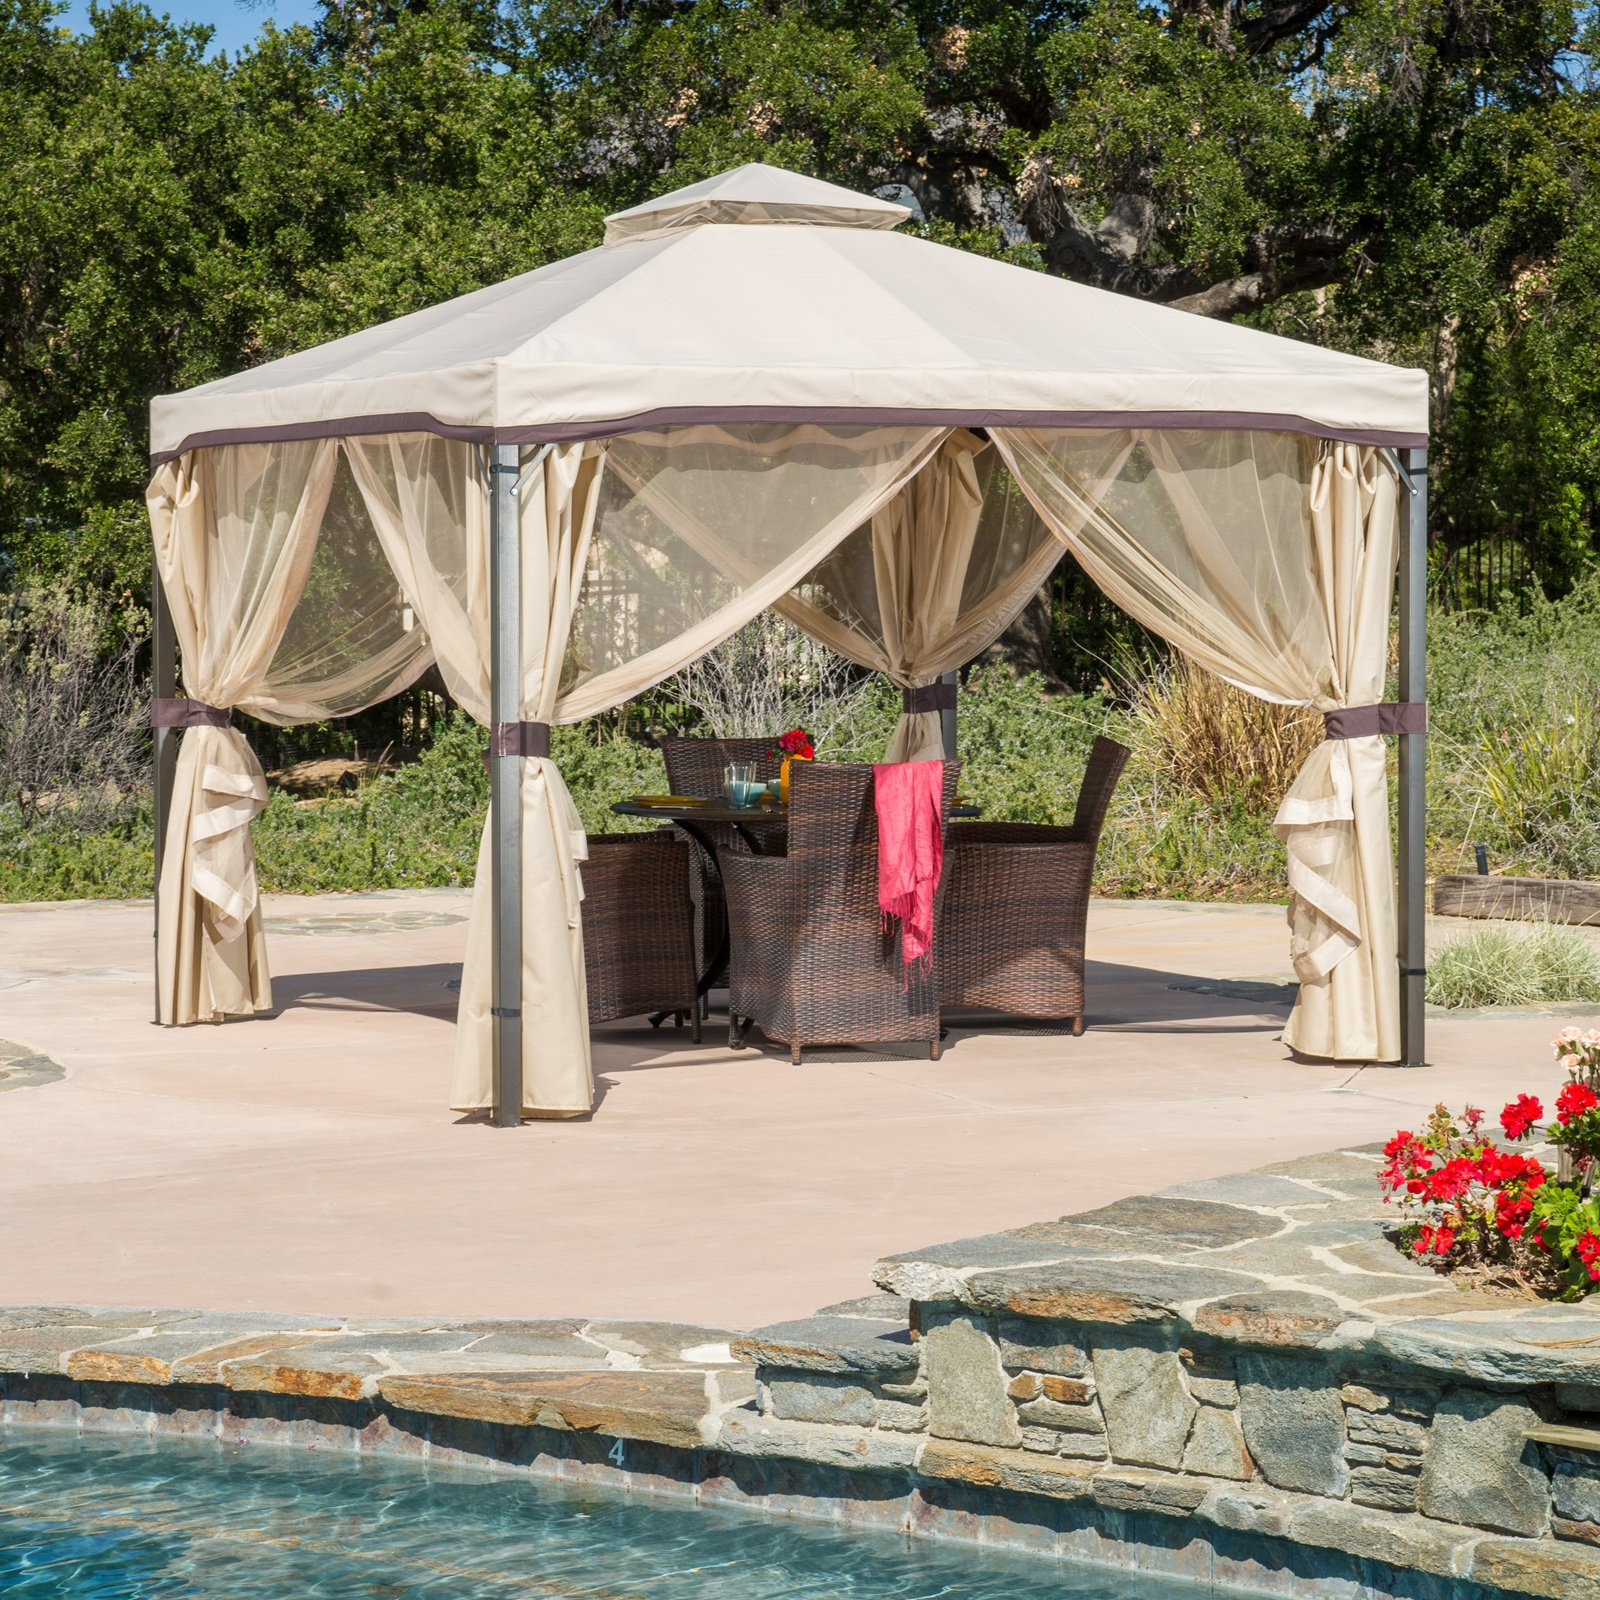 Best Selling Home Genoa Gazebo by Best Selling Home Decor Furniture LLC